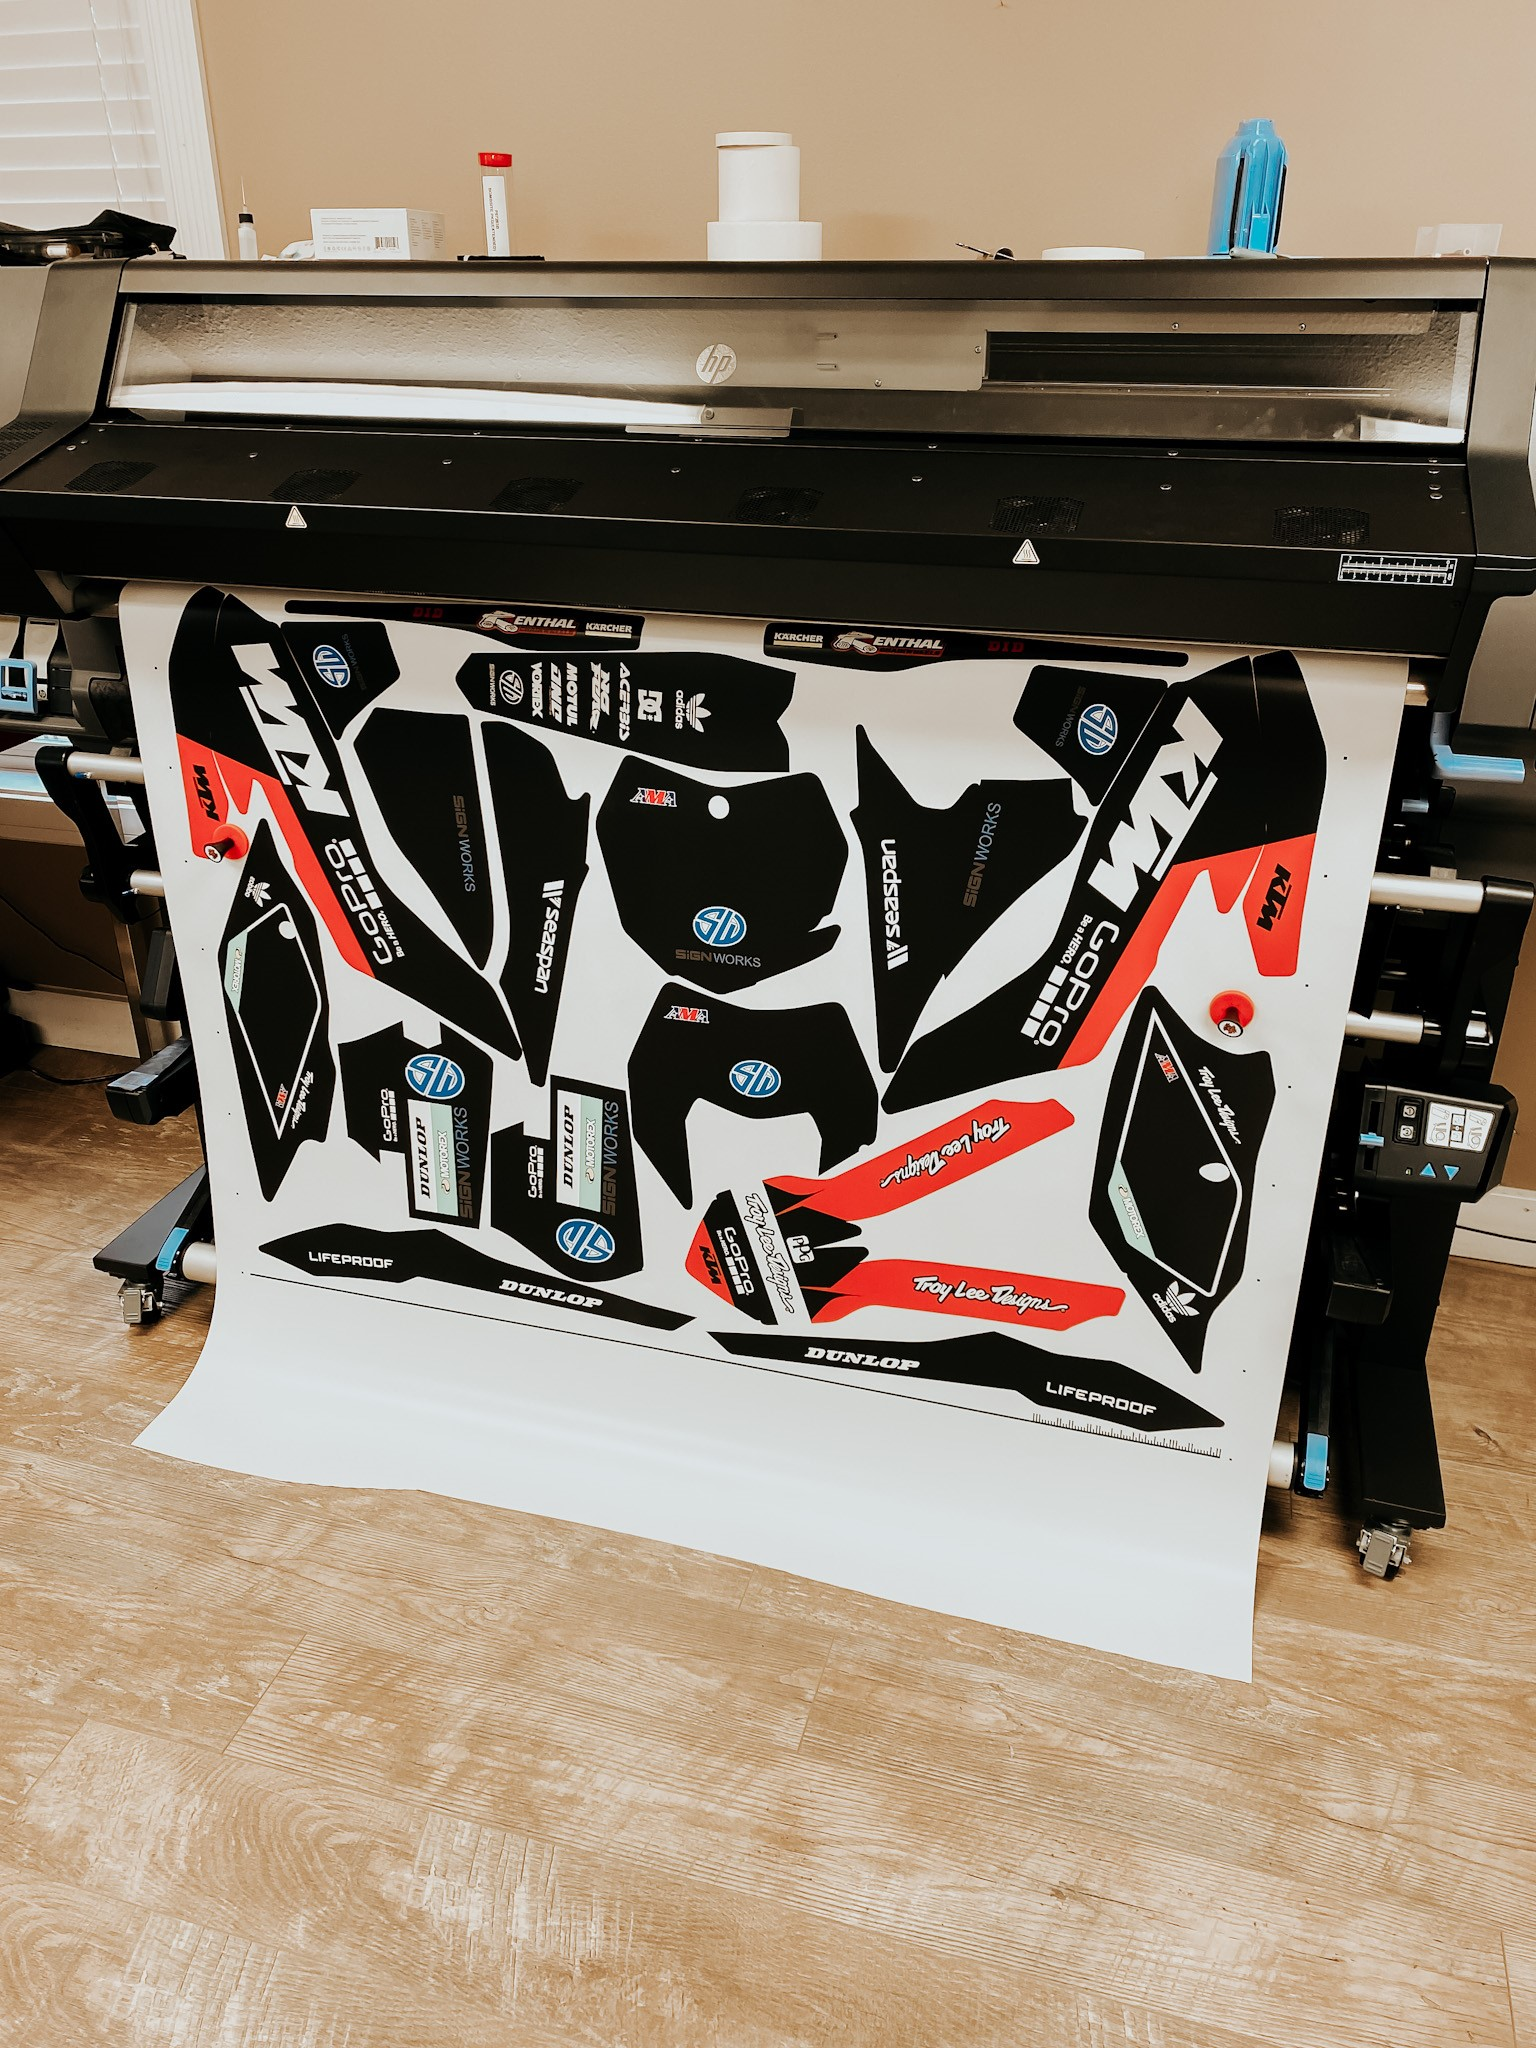 graphics being printed